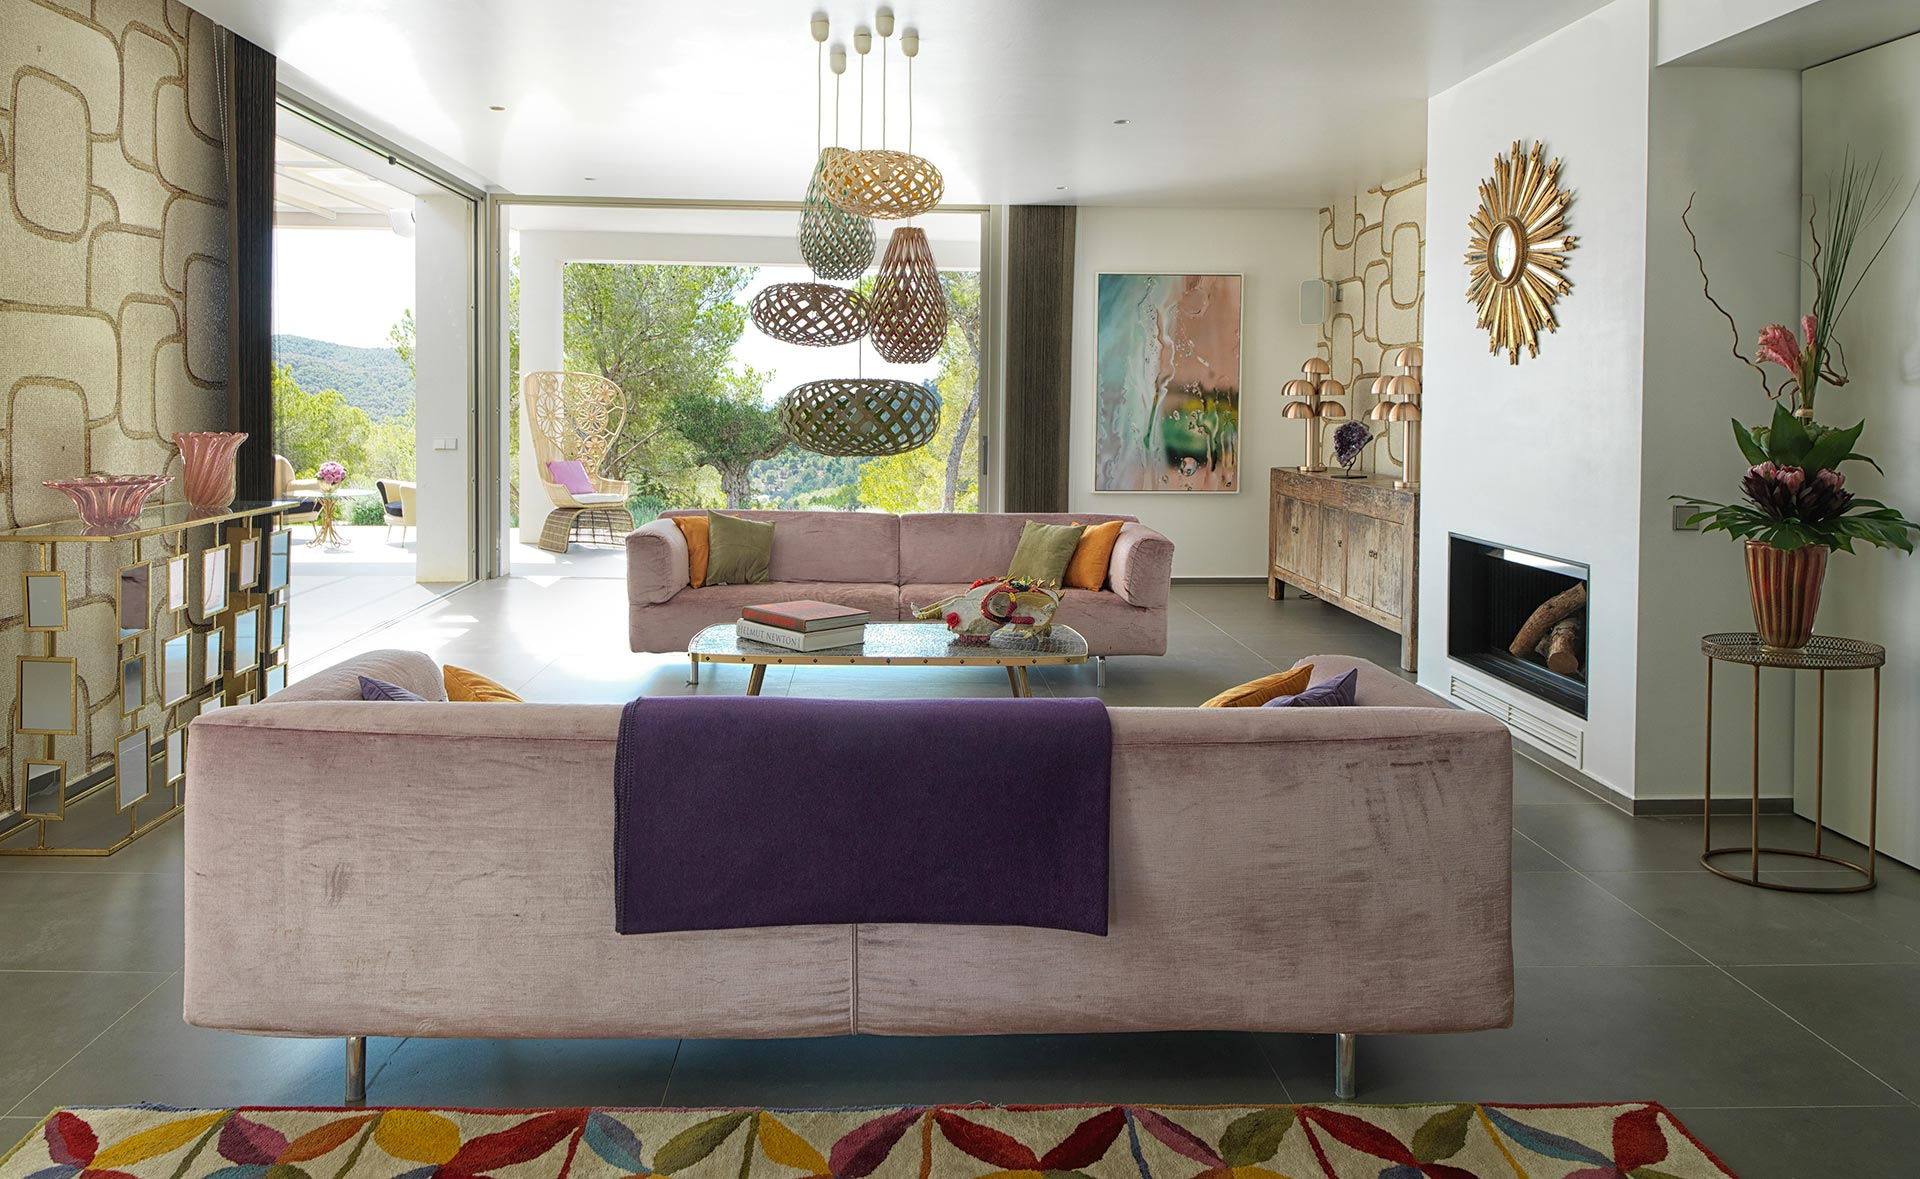 Brilliantly refurbished house on Ibiza-the living room